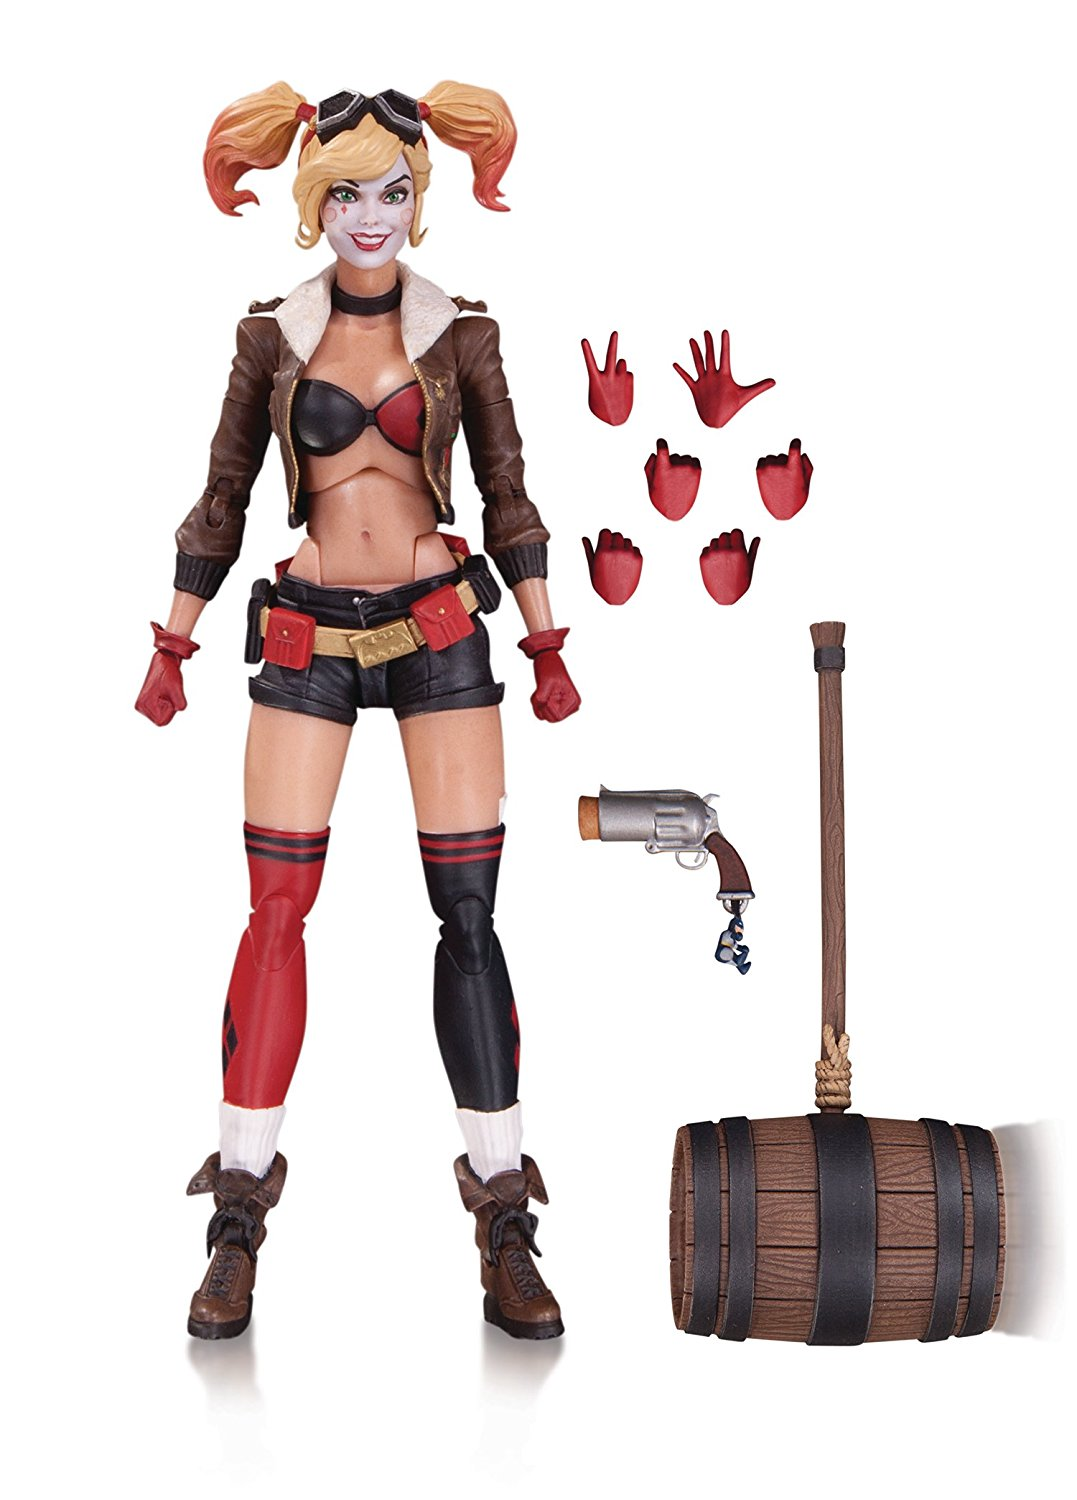 Bombshells Harley Quinn Action Figure, The DC bombshells debut in action figure form By DC... by